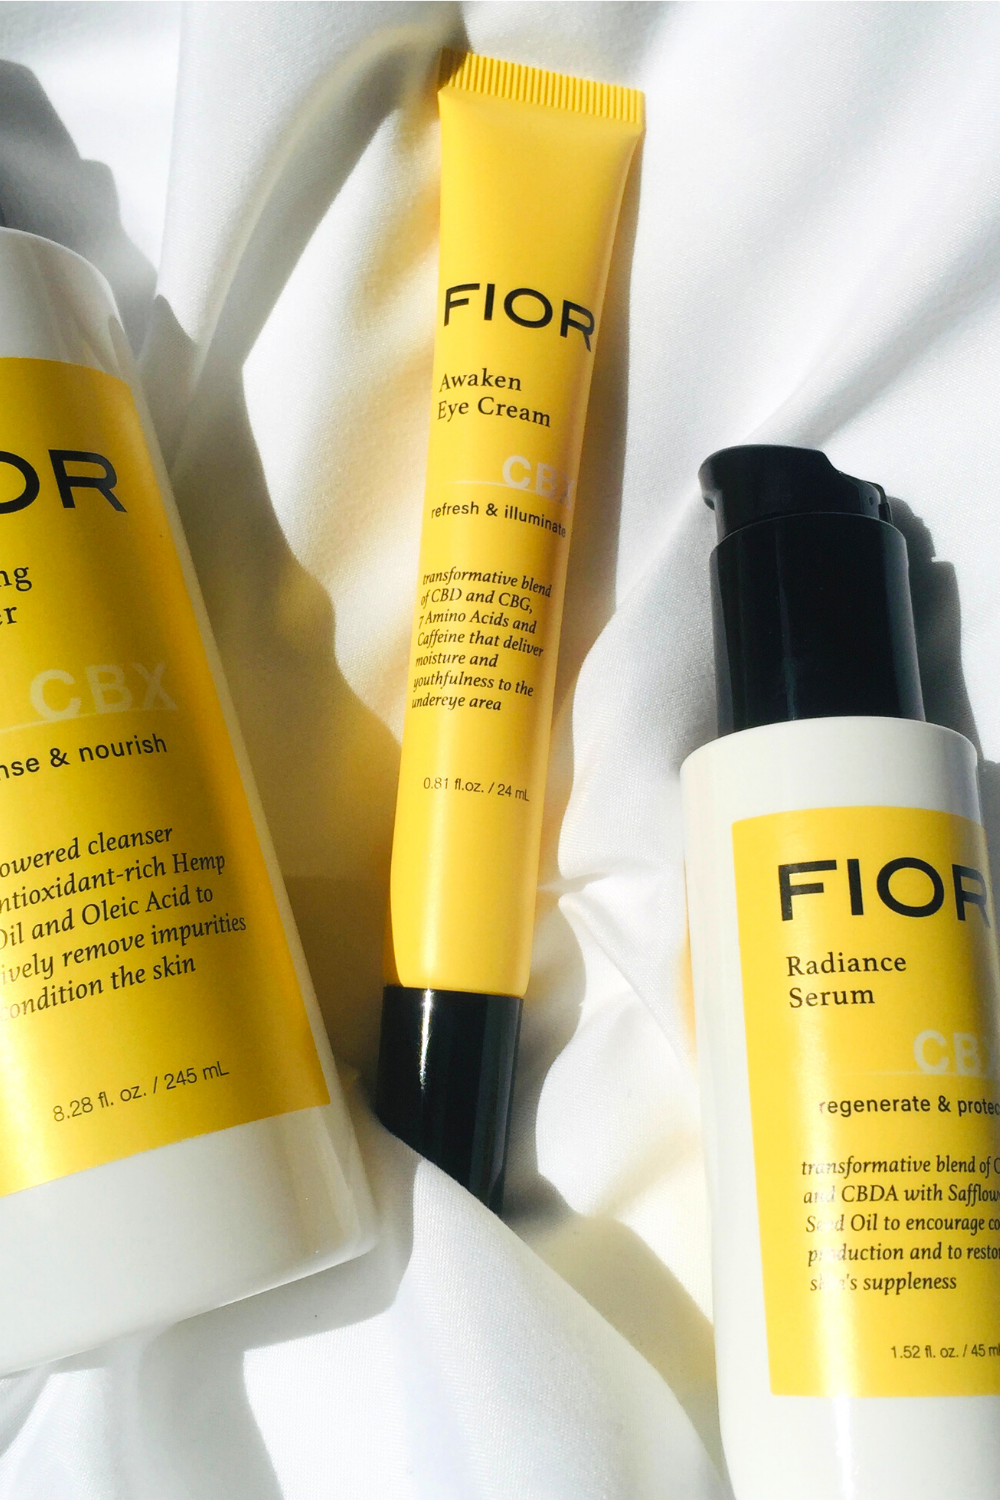 Curious About CBD Oil? What is it? And why is it in your skincare? We're breaking down the benefits and facts that CBD oil has for skin. Is it just a fad? Or does it really have big beauty benefits? Click here for all the CBD details and Fior Awaken Eye Cream Review!  #CBDOil #CBDOilBenefits